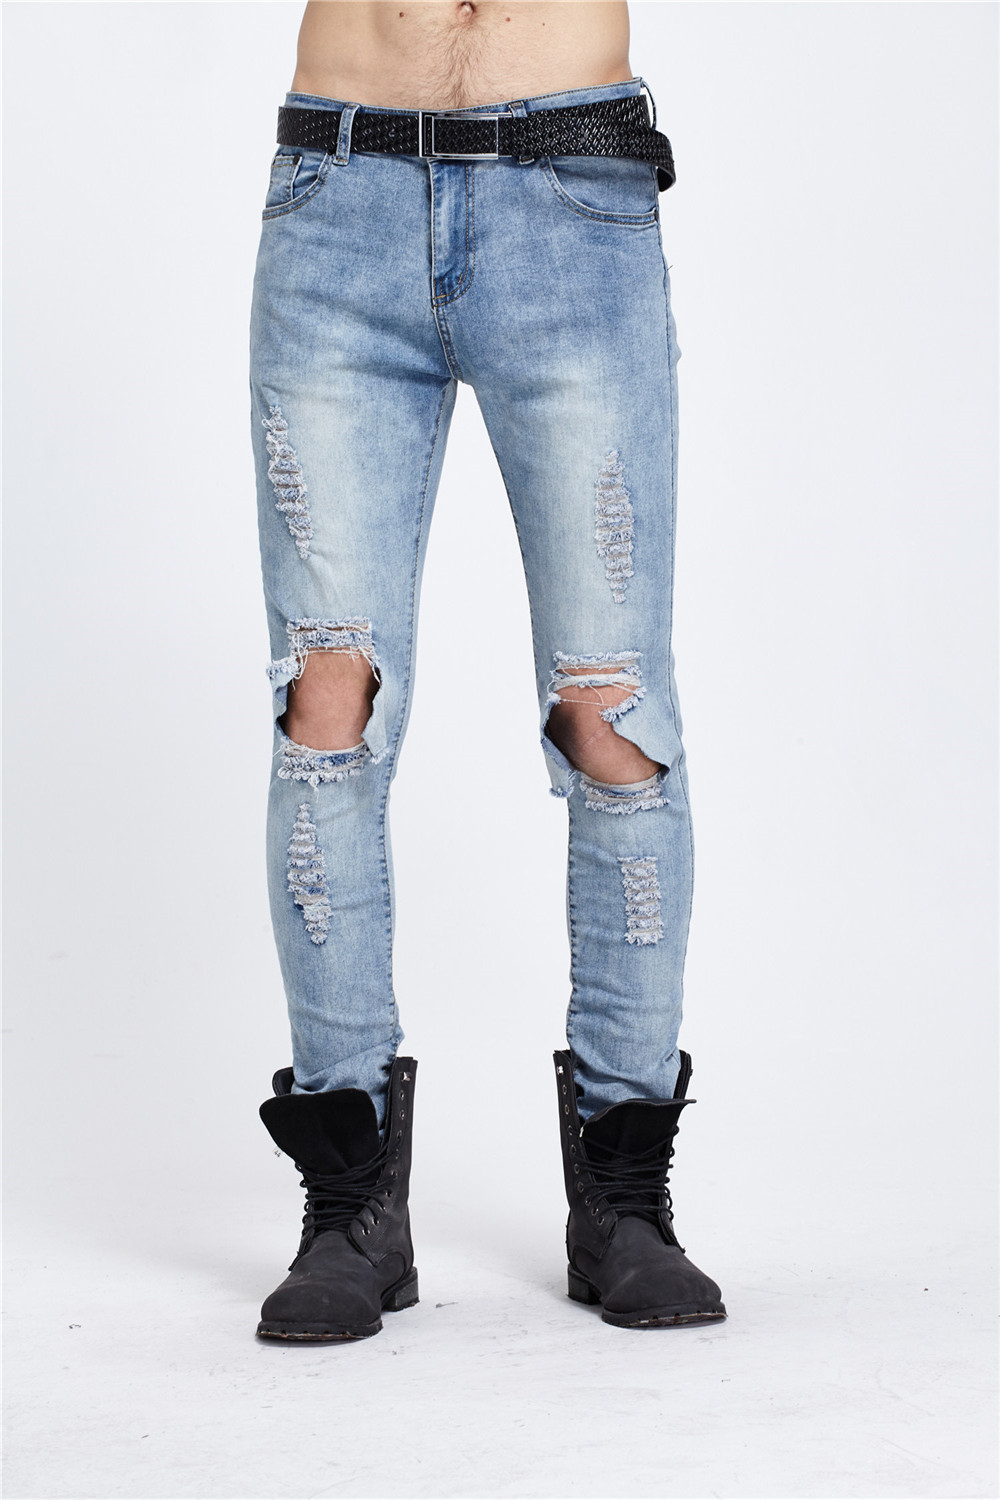 High Quality Skinny Legs Jeans Promotion-Shop for High Quality ...